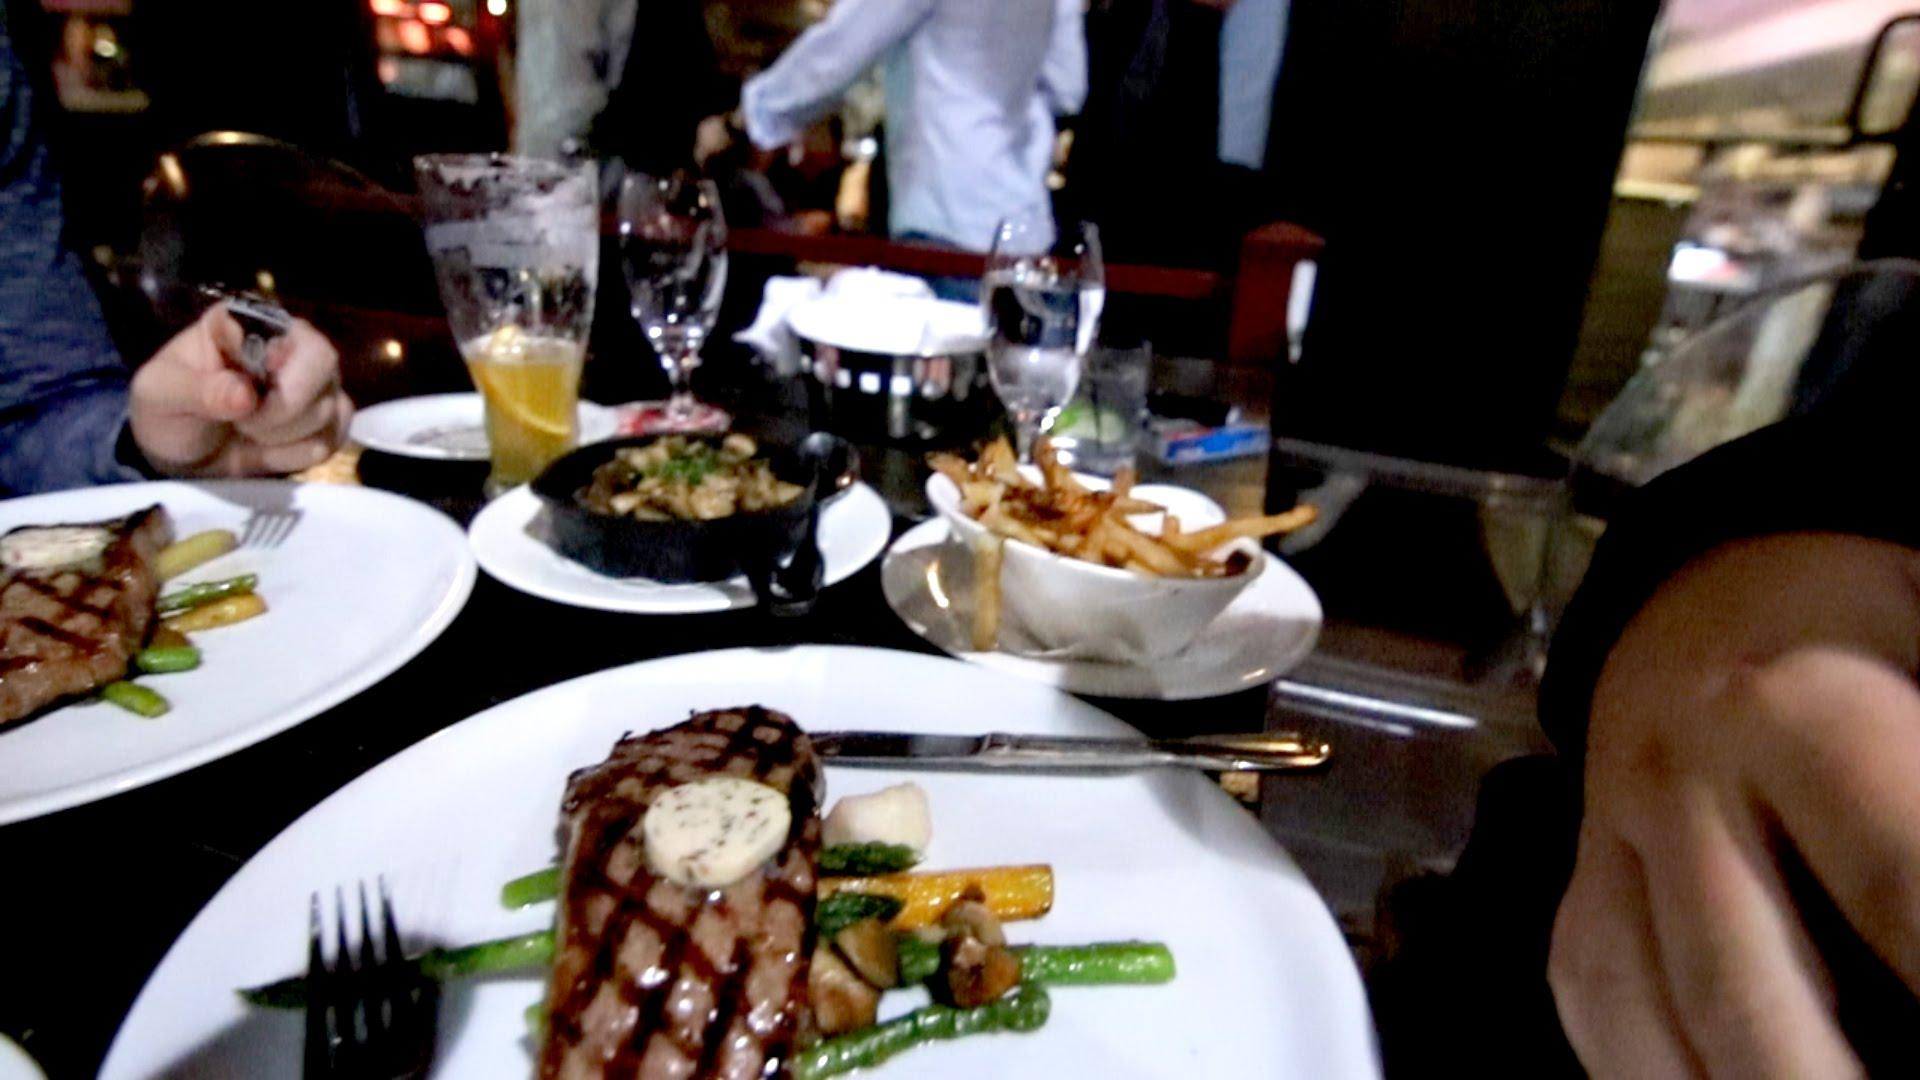 Jaime Staples - How To Get A $140 Meal For Free!